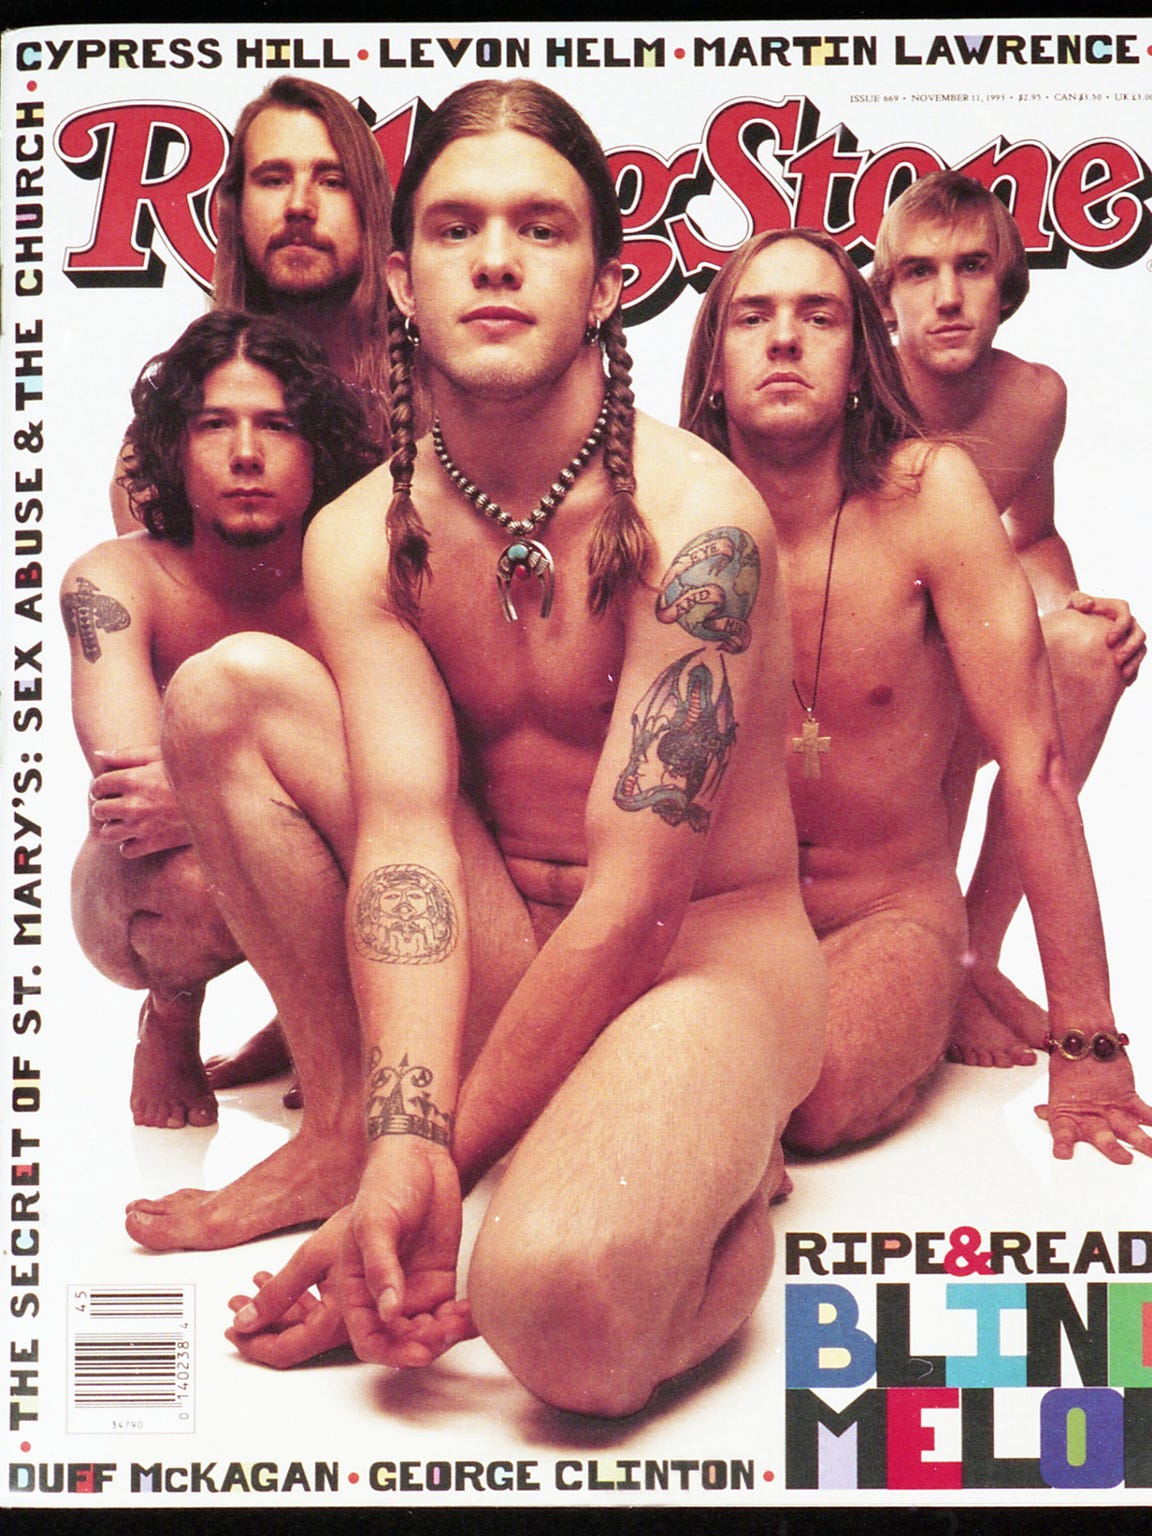 Hoon (front) and the rest of Blind Melon bare it all